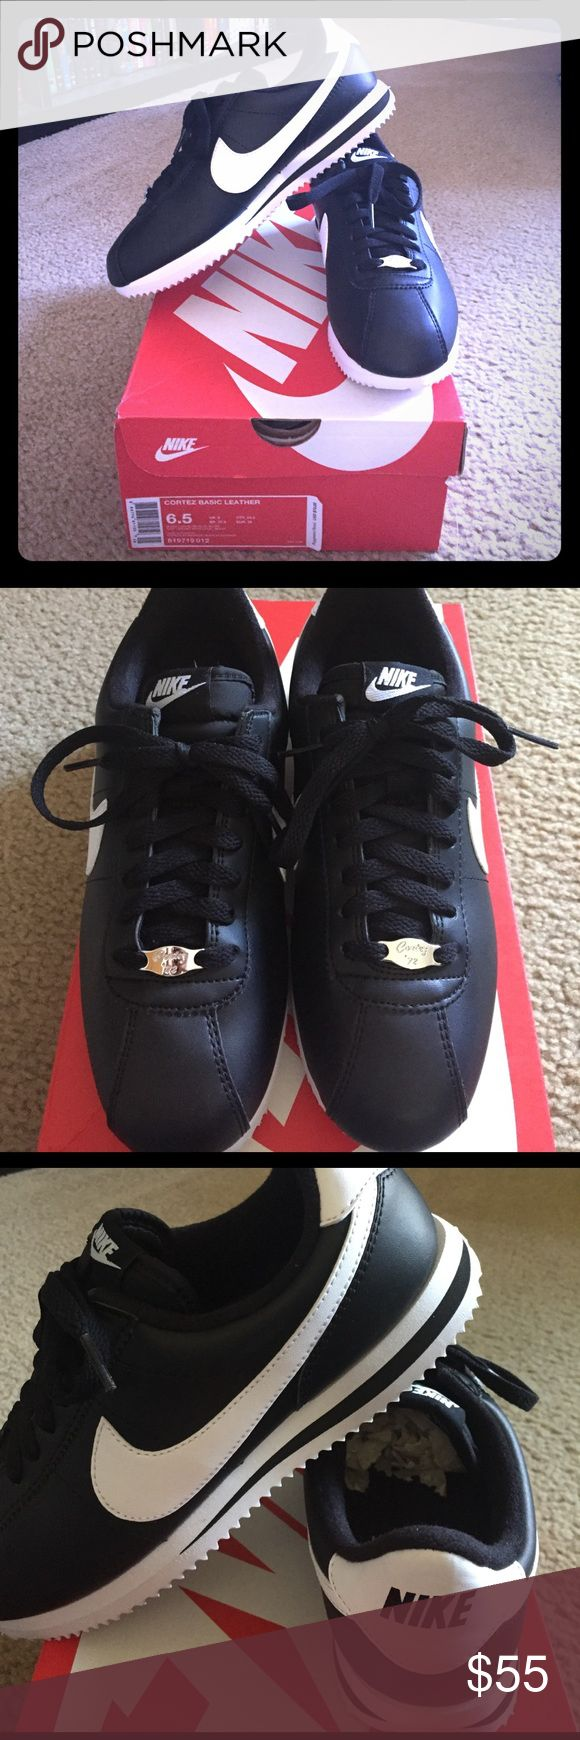 NIB! Nike Cortez Men's Sz. 6.5/ Wmn's Sz. 8 Brand new!  Nike Cortez black and white sneakers. Men's size 6.5 same as Women's size 8. These are a Nike classic! Wonderful shoes!! Nike Shoes Sneakers